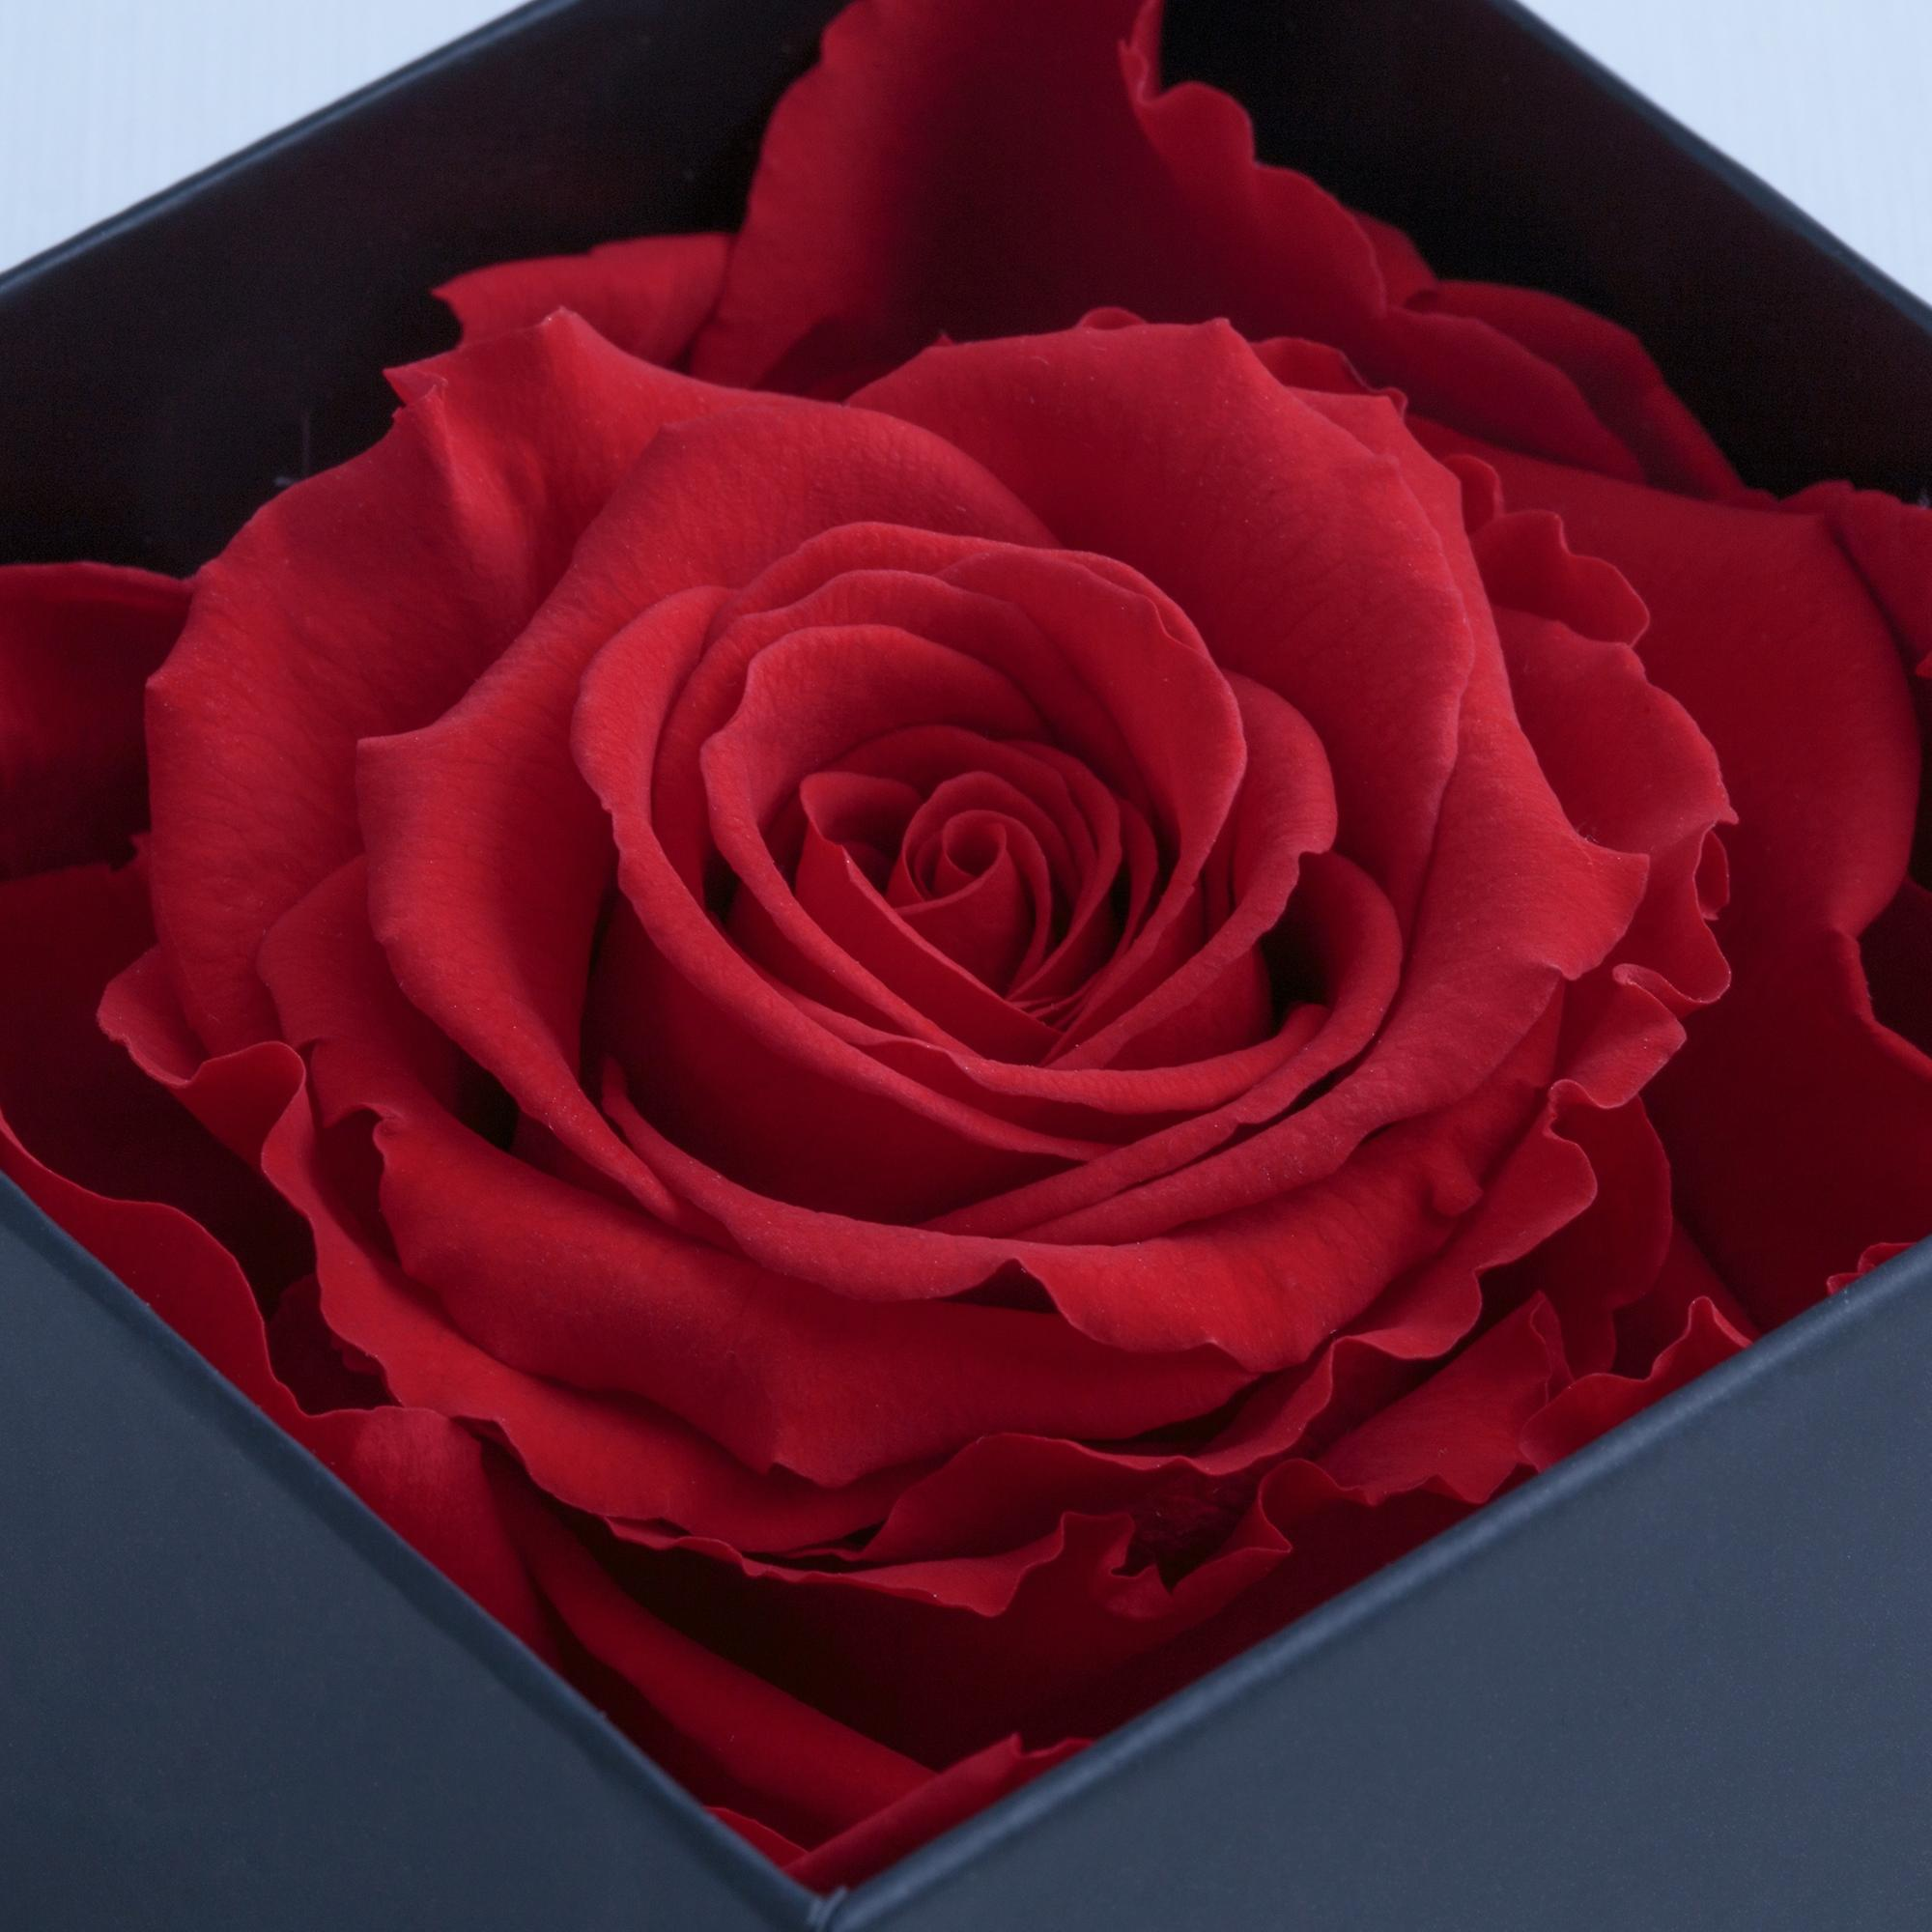 Floral arrangement preserved eternal rose gift box - Merci